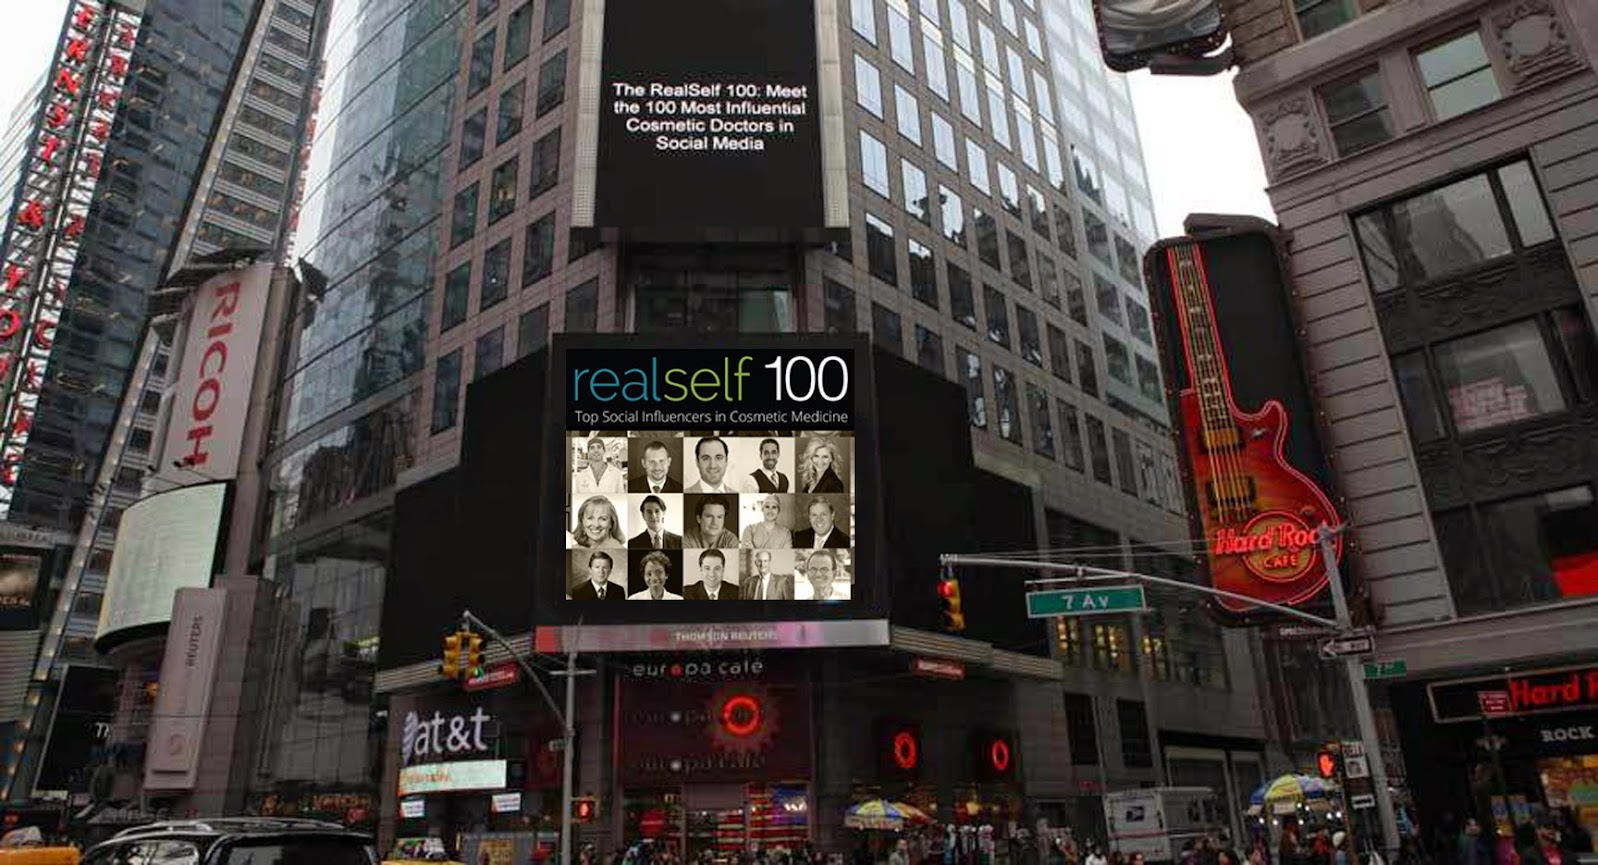 Dr. Mulholland is on the RealSelf 100 list. This billboard was displayed in Time Square, New York City.